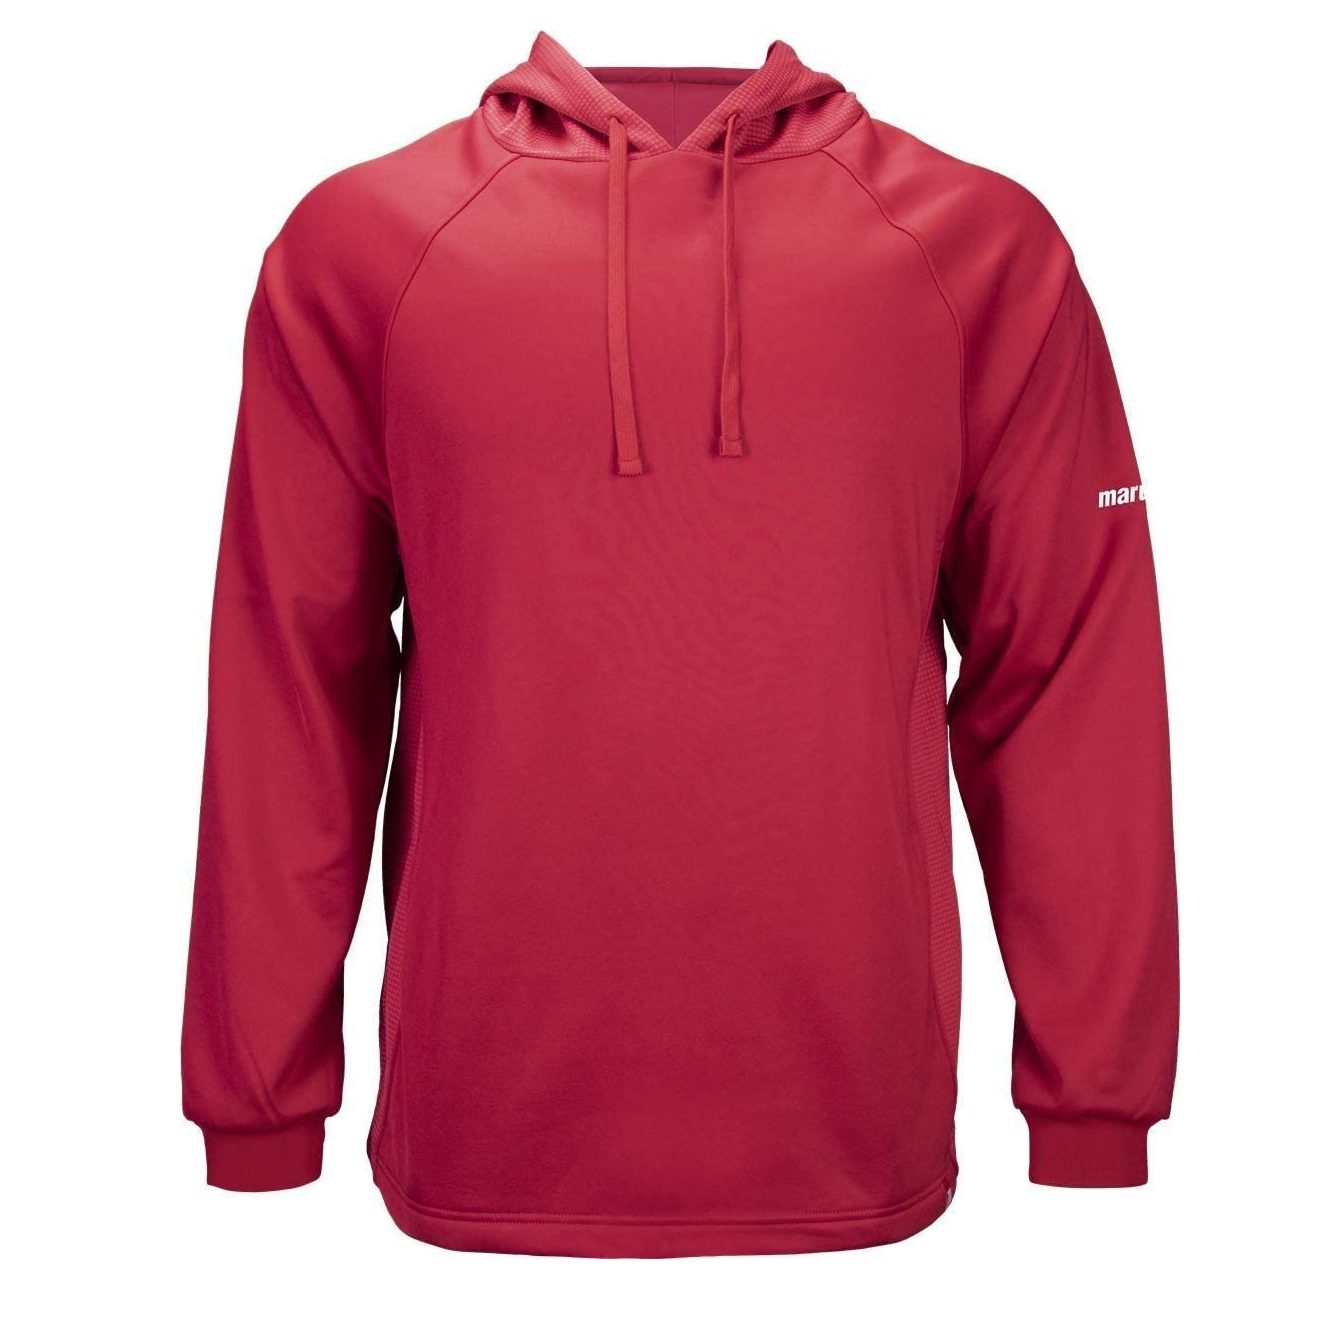 marucci-sports-mens-warm-up-tech-fleece-matflhtc-red-adult-large-baseball-hoodie MATFLHTC-R-AL   Marucci Sports - Warm-Up Tech Fleece MATFLHTCY Baseball Hoodie. As a